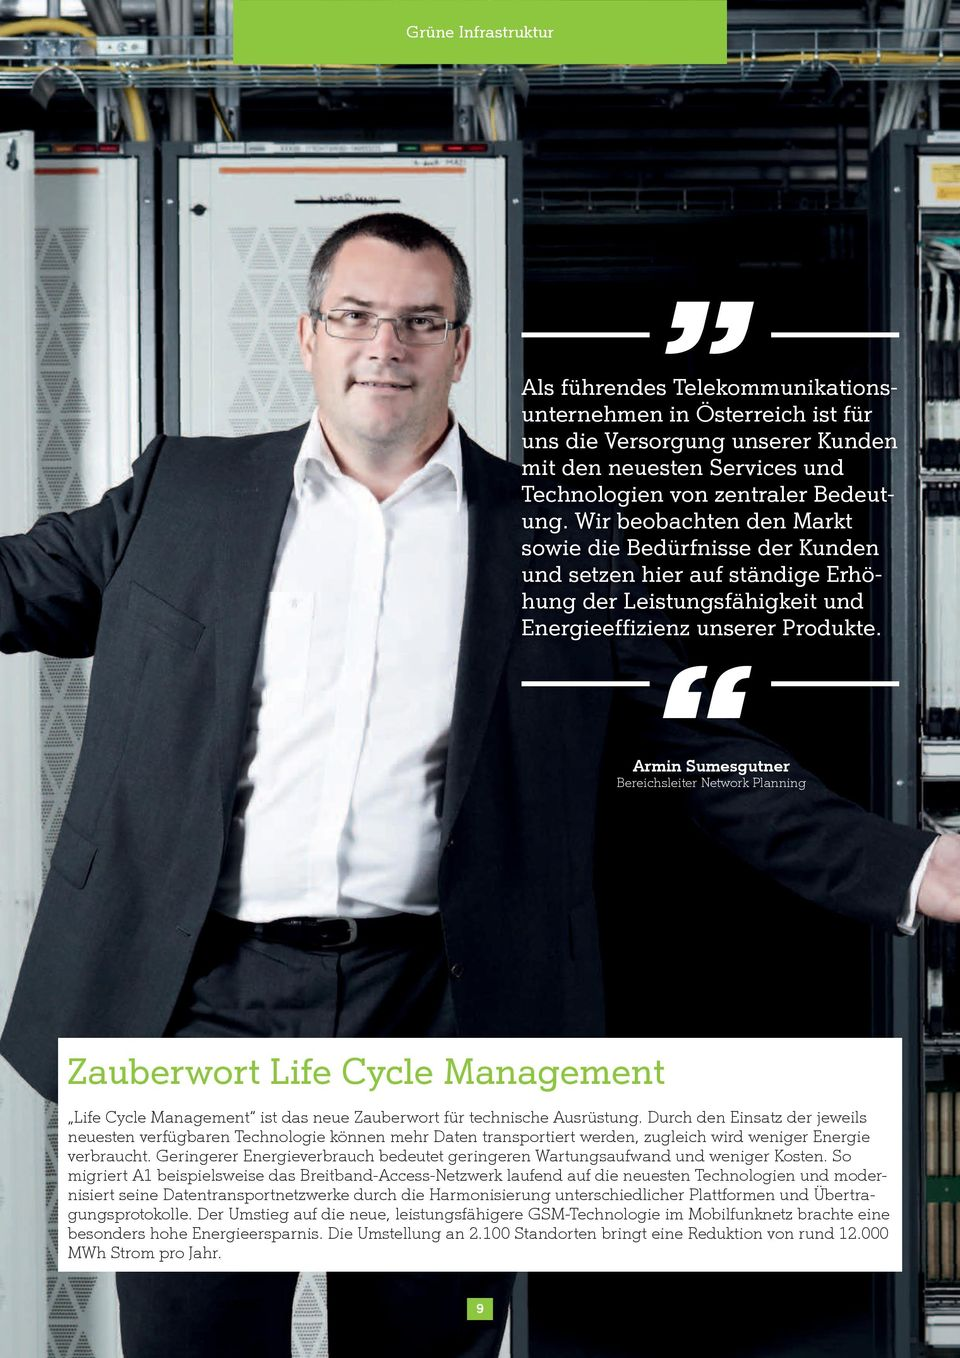 Armin Sumesgutner Bereichsleiter Network Planning Zauberwort Life Cycle Management Life Cycle Management ist das neue Zauberwort für technische Ausrüstung.